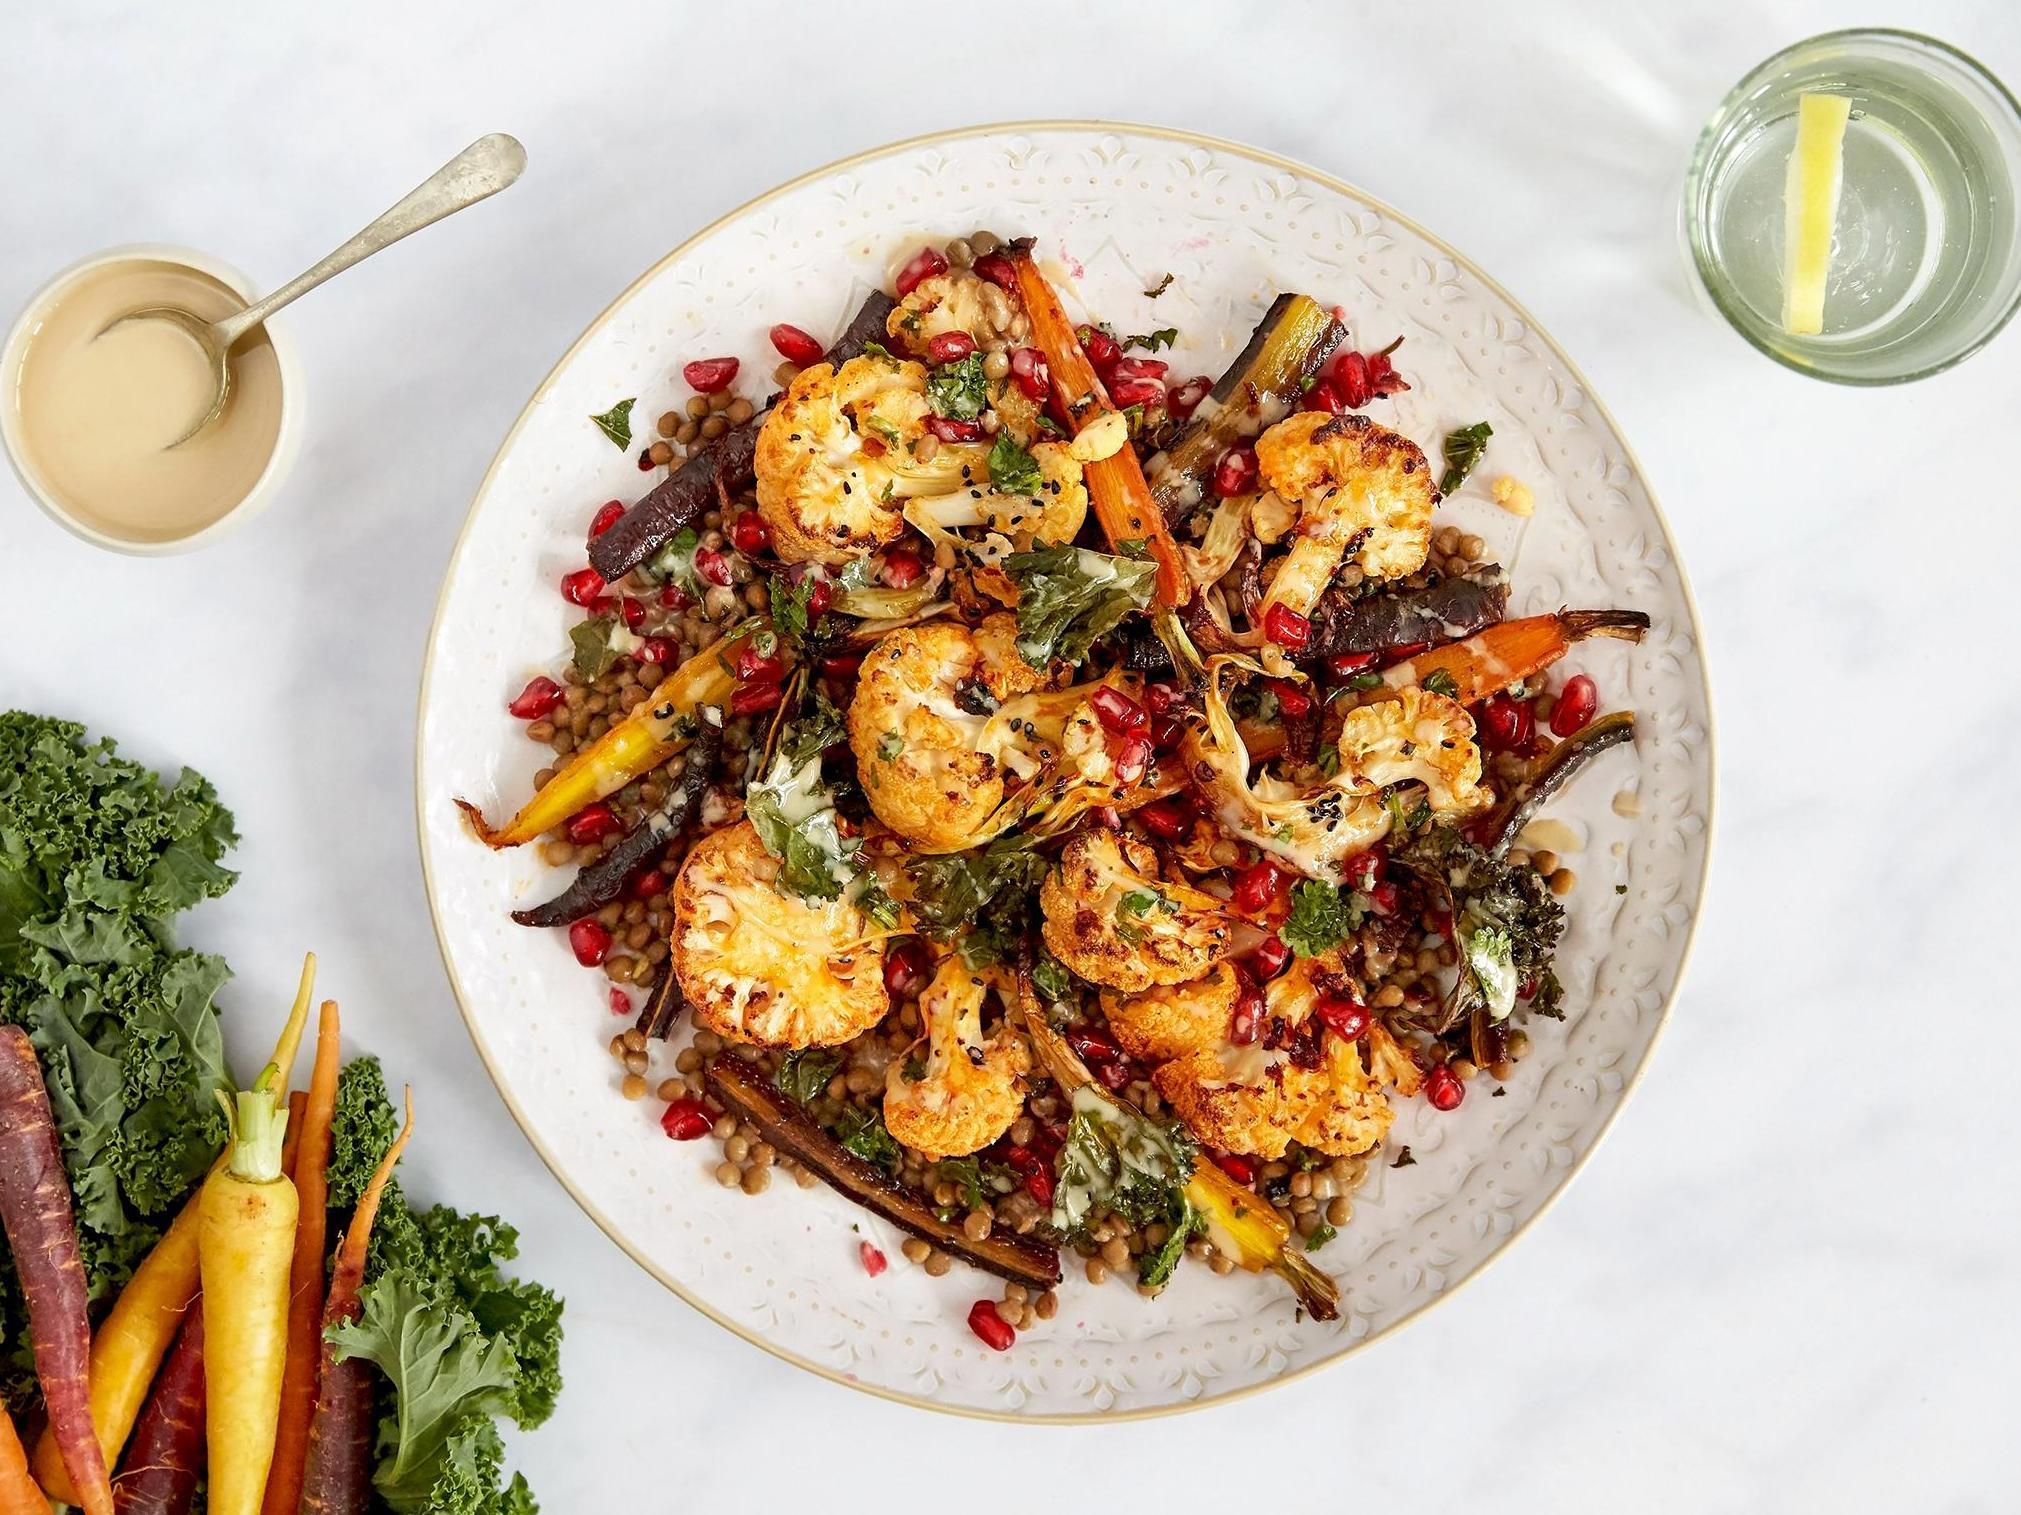 How to make harissa cauliflower with herby lentils and tahini 1